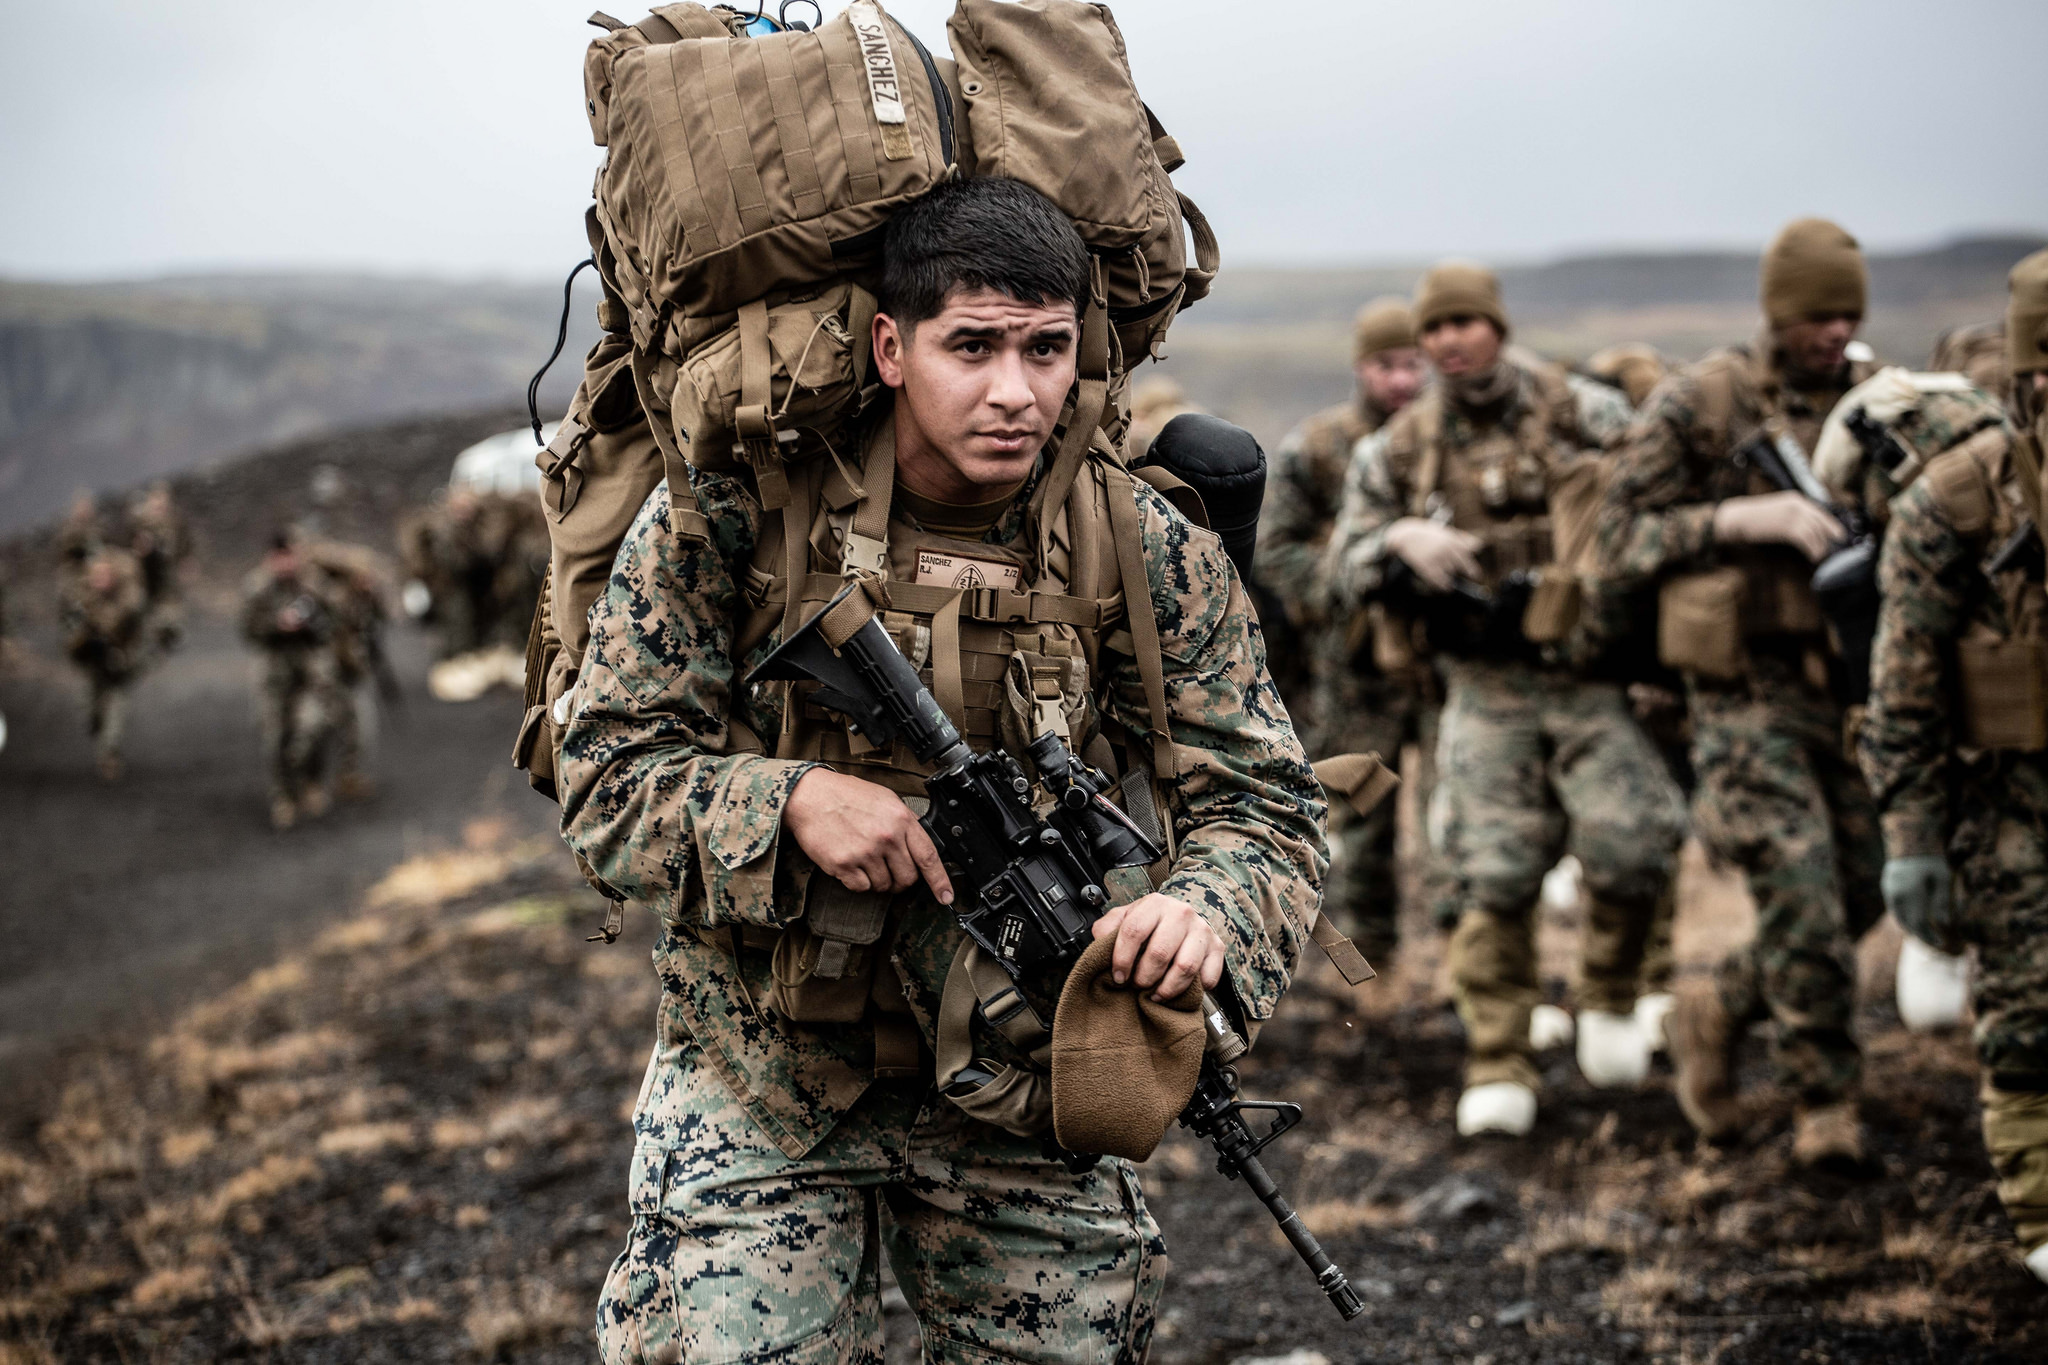 A Marine with the 24th Marine Expeditionary Unit carries cold weather equipment as he begins to march across the Icelandic terrain Oct. 19, 2018. The 24th MEU was in Iceland preparing for NATO Exercise Trident Juncture 2018. (Capt. Kylee Ashton/Air Force)